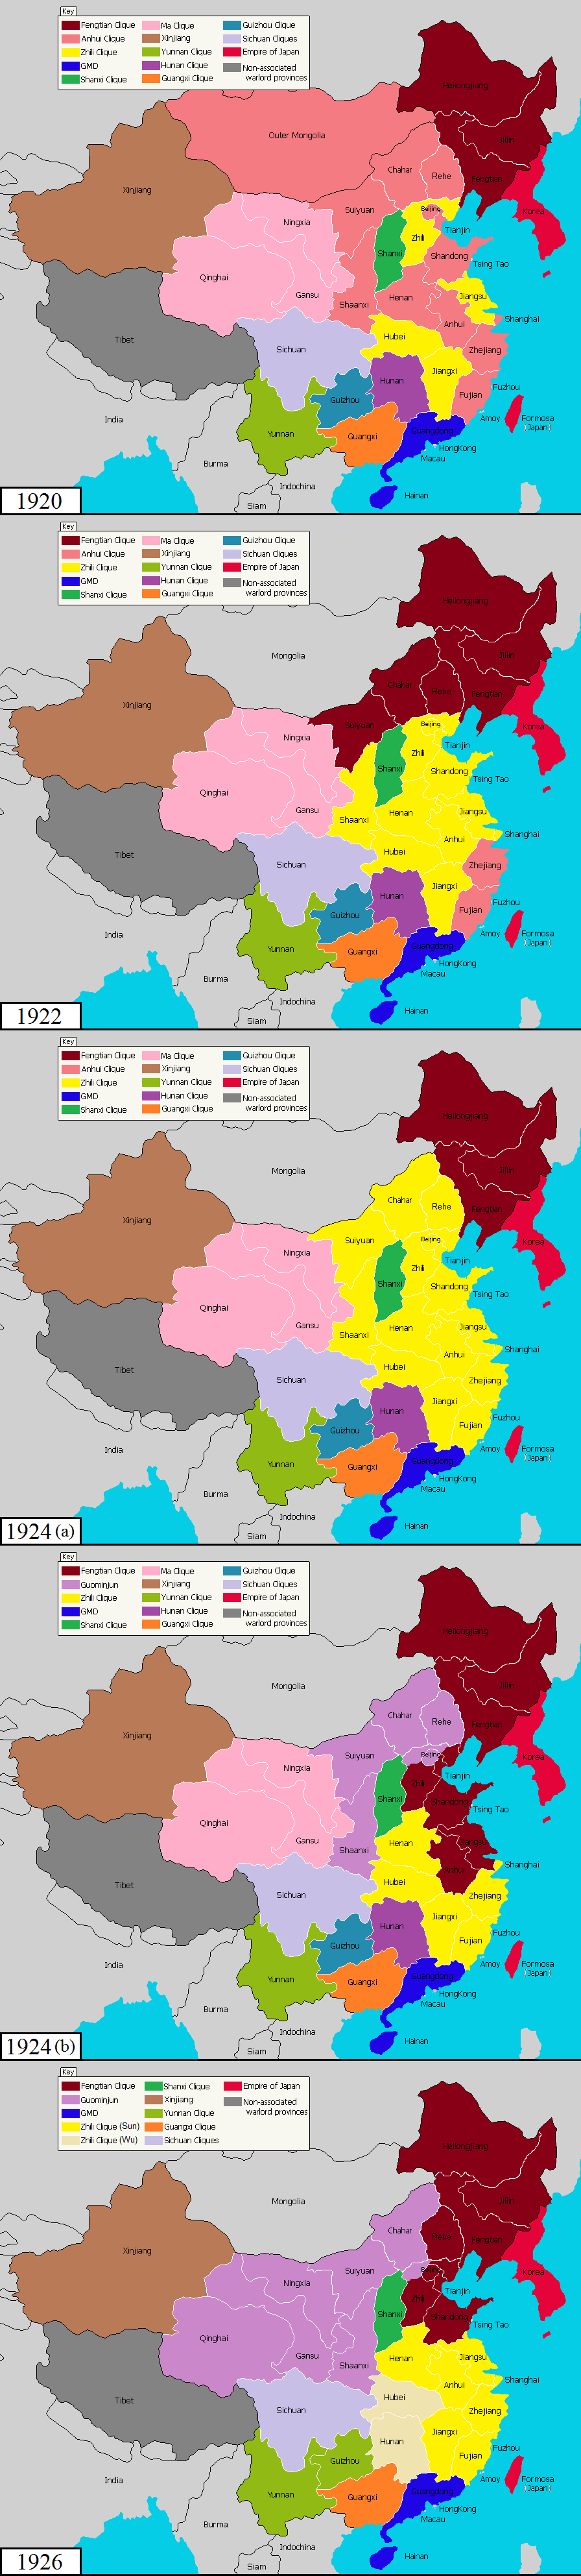 1920 1926 chinese warlord era which began in 1916 and ended in 1920 1926 chinese warlord era which began in 1916 and ended in gumiabroncs Image collections